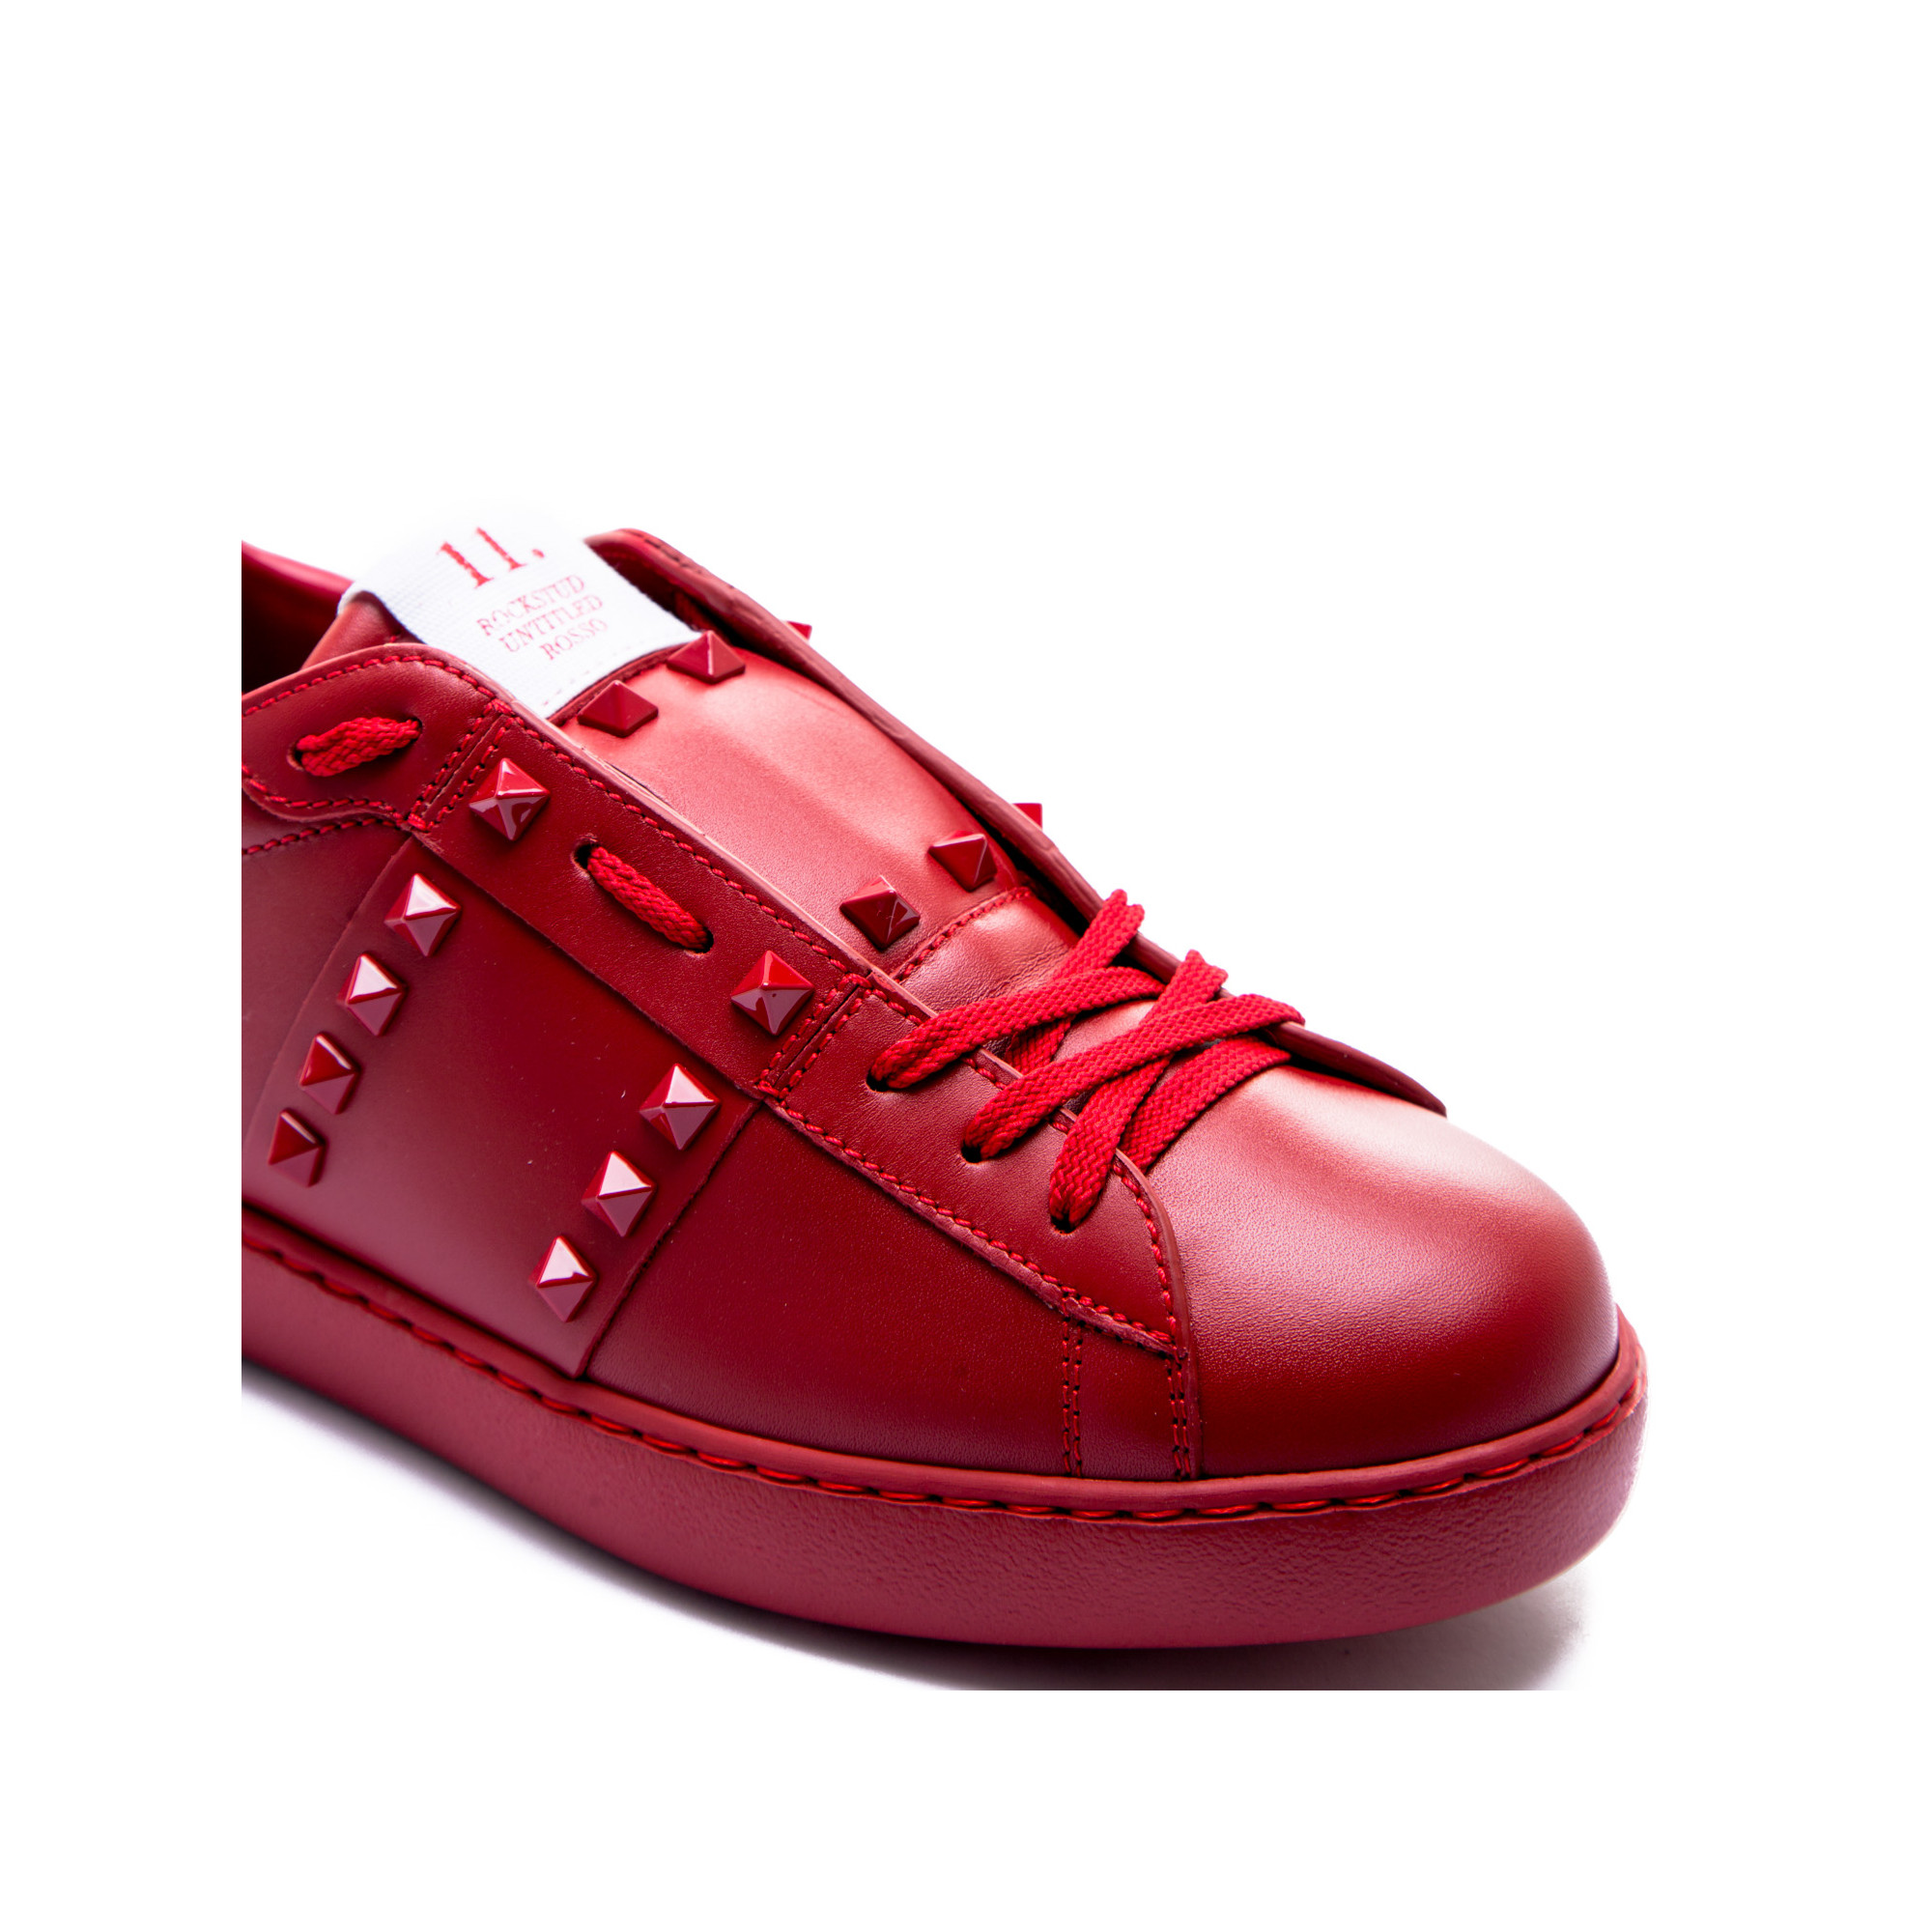 Chaussures Rouge Rouge Valentino xMNyjNMiS2